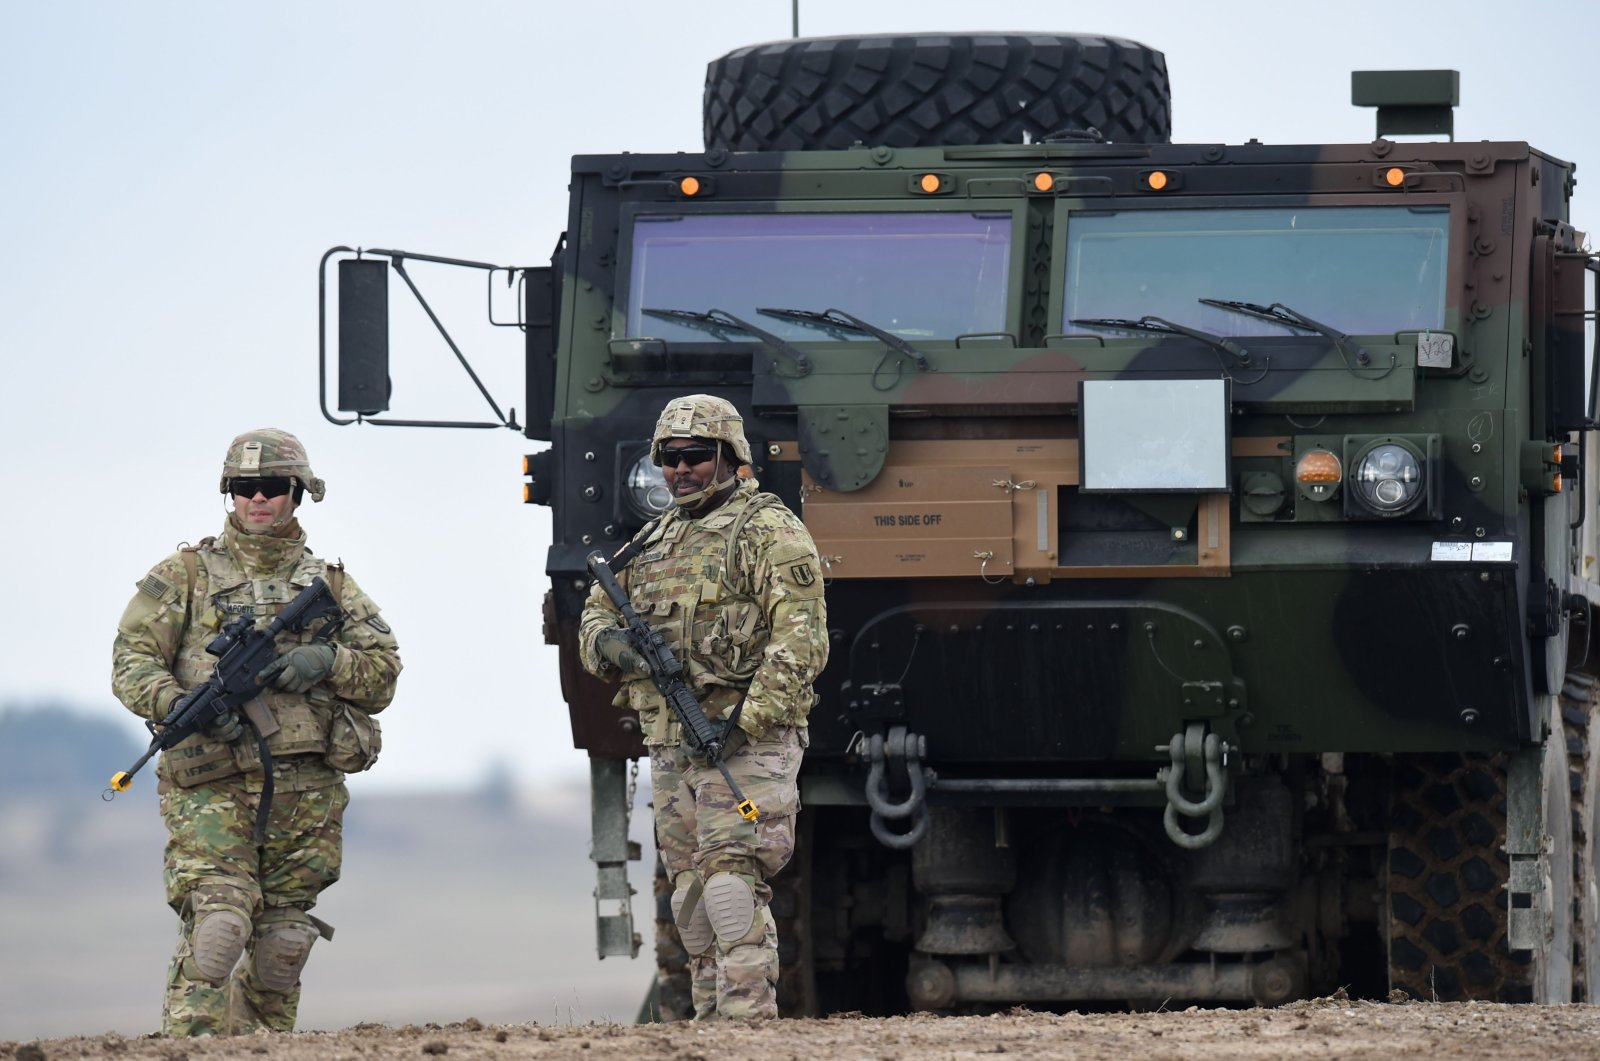 U.S. soldiers patrol prior to an artillery live-fire event by the U.S. Army Europe's 41st Field Artillery Brigade at the military training area in Grafenwoehr, Germany, March 4, 2020. (AFP Photo)